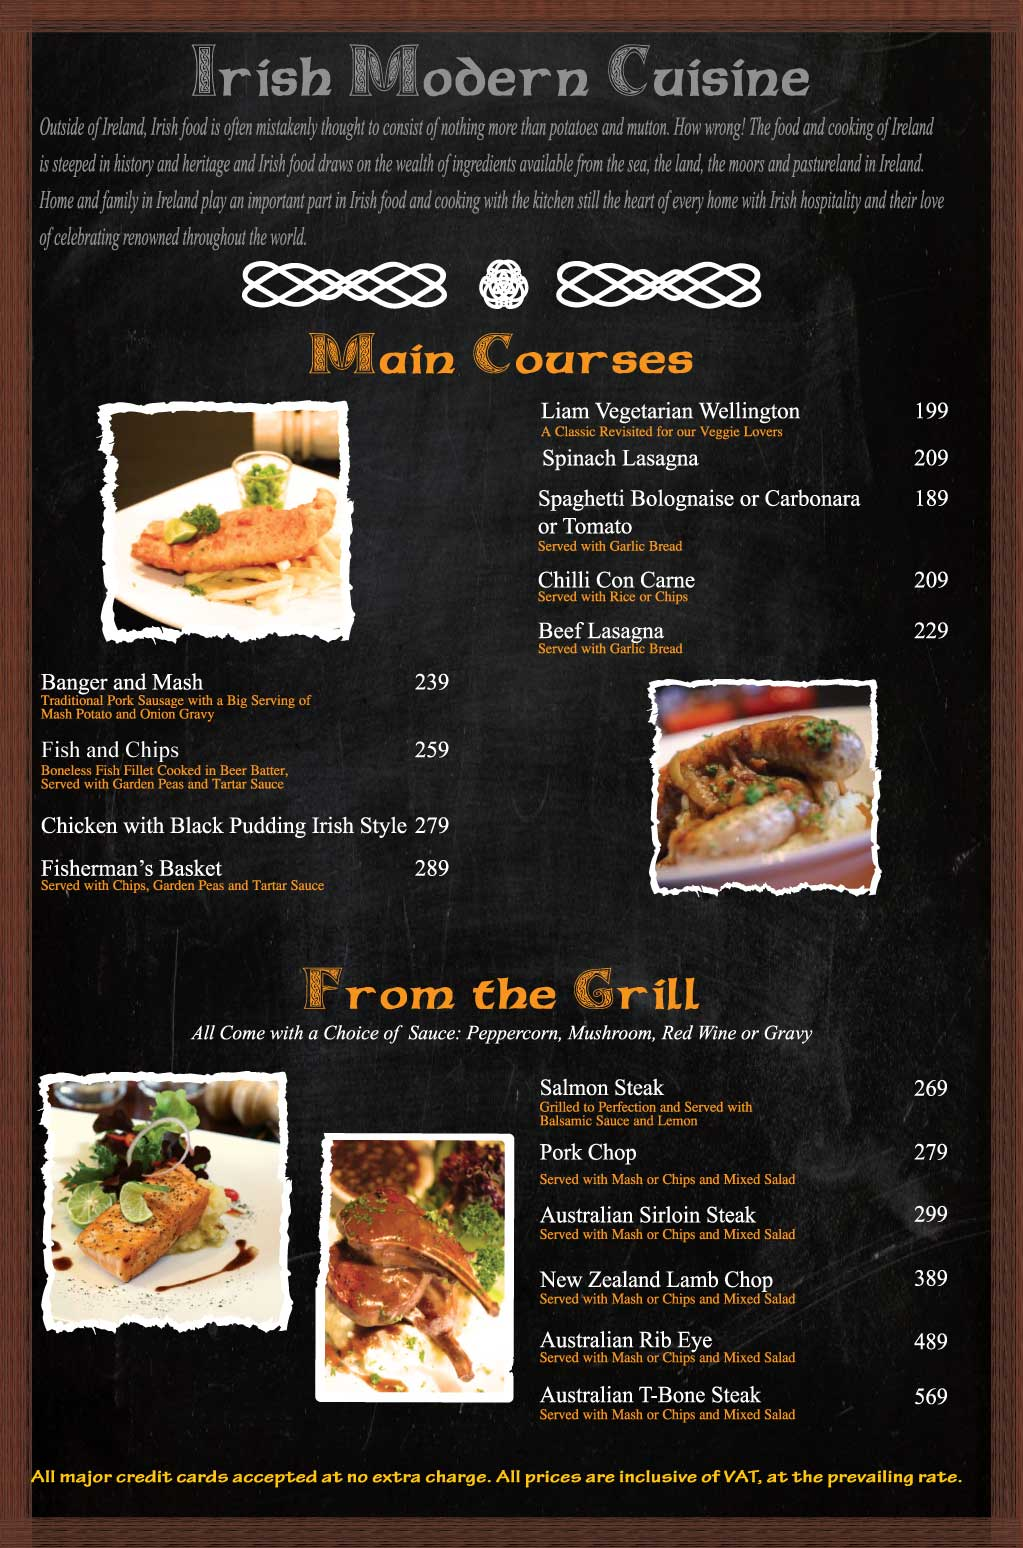 Flann Asiatique Food Menu Main Courses Grill